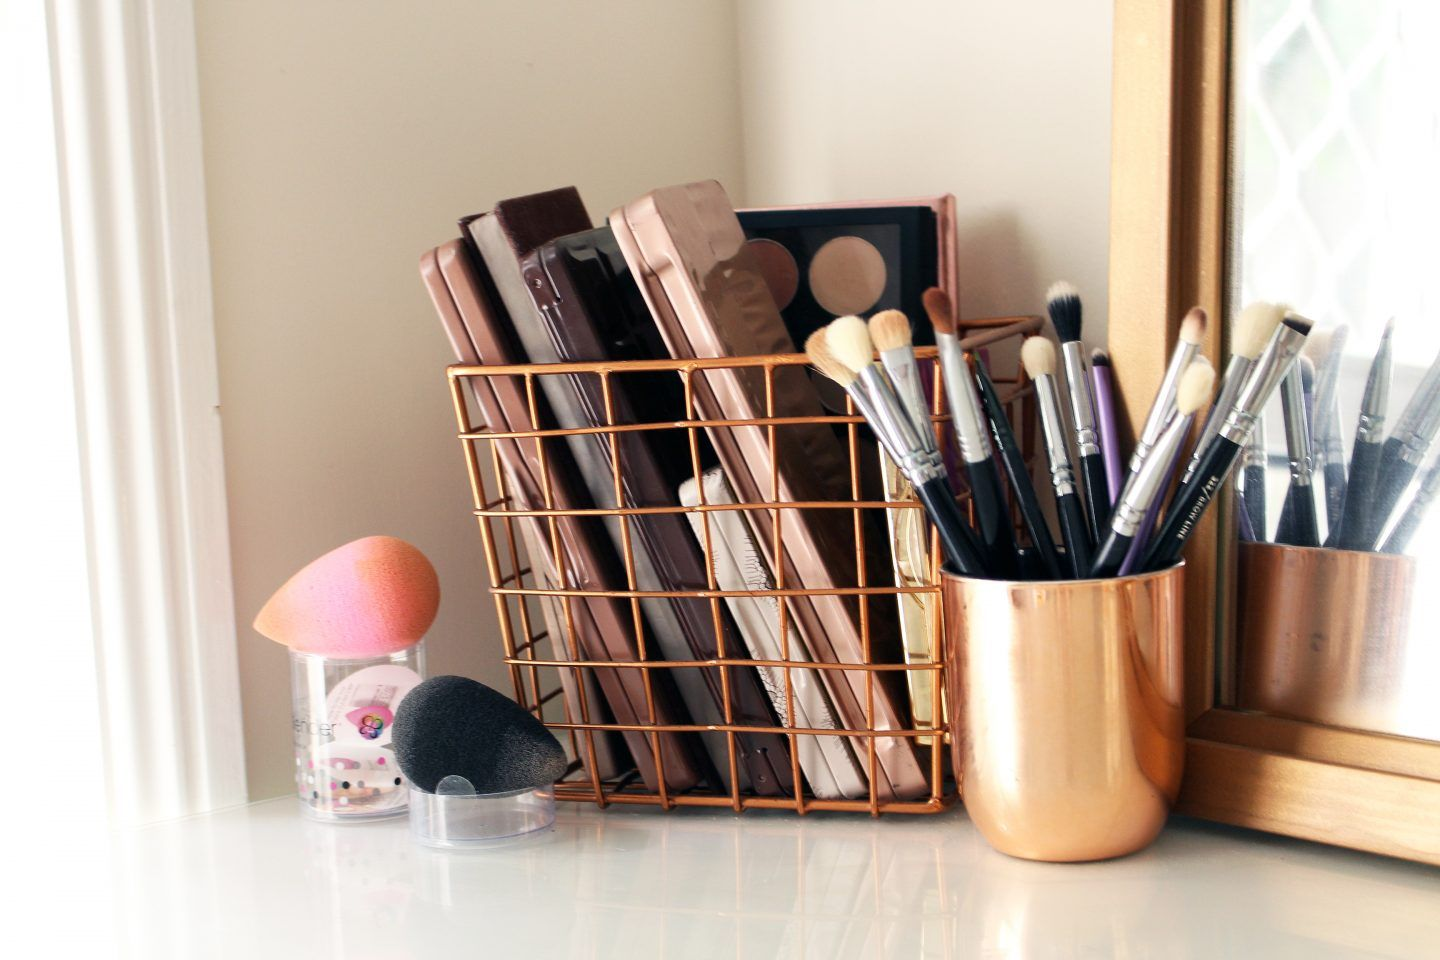 How To Organize & Display Makeup Product In Cool Ways images